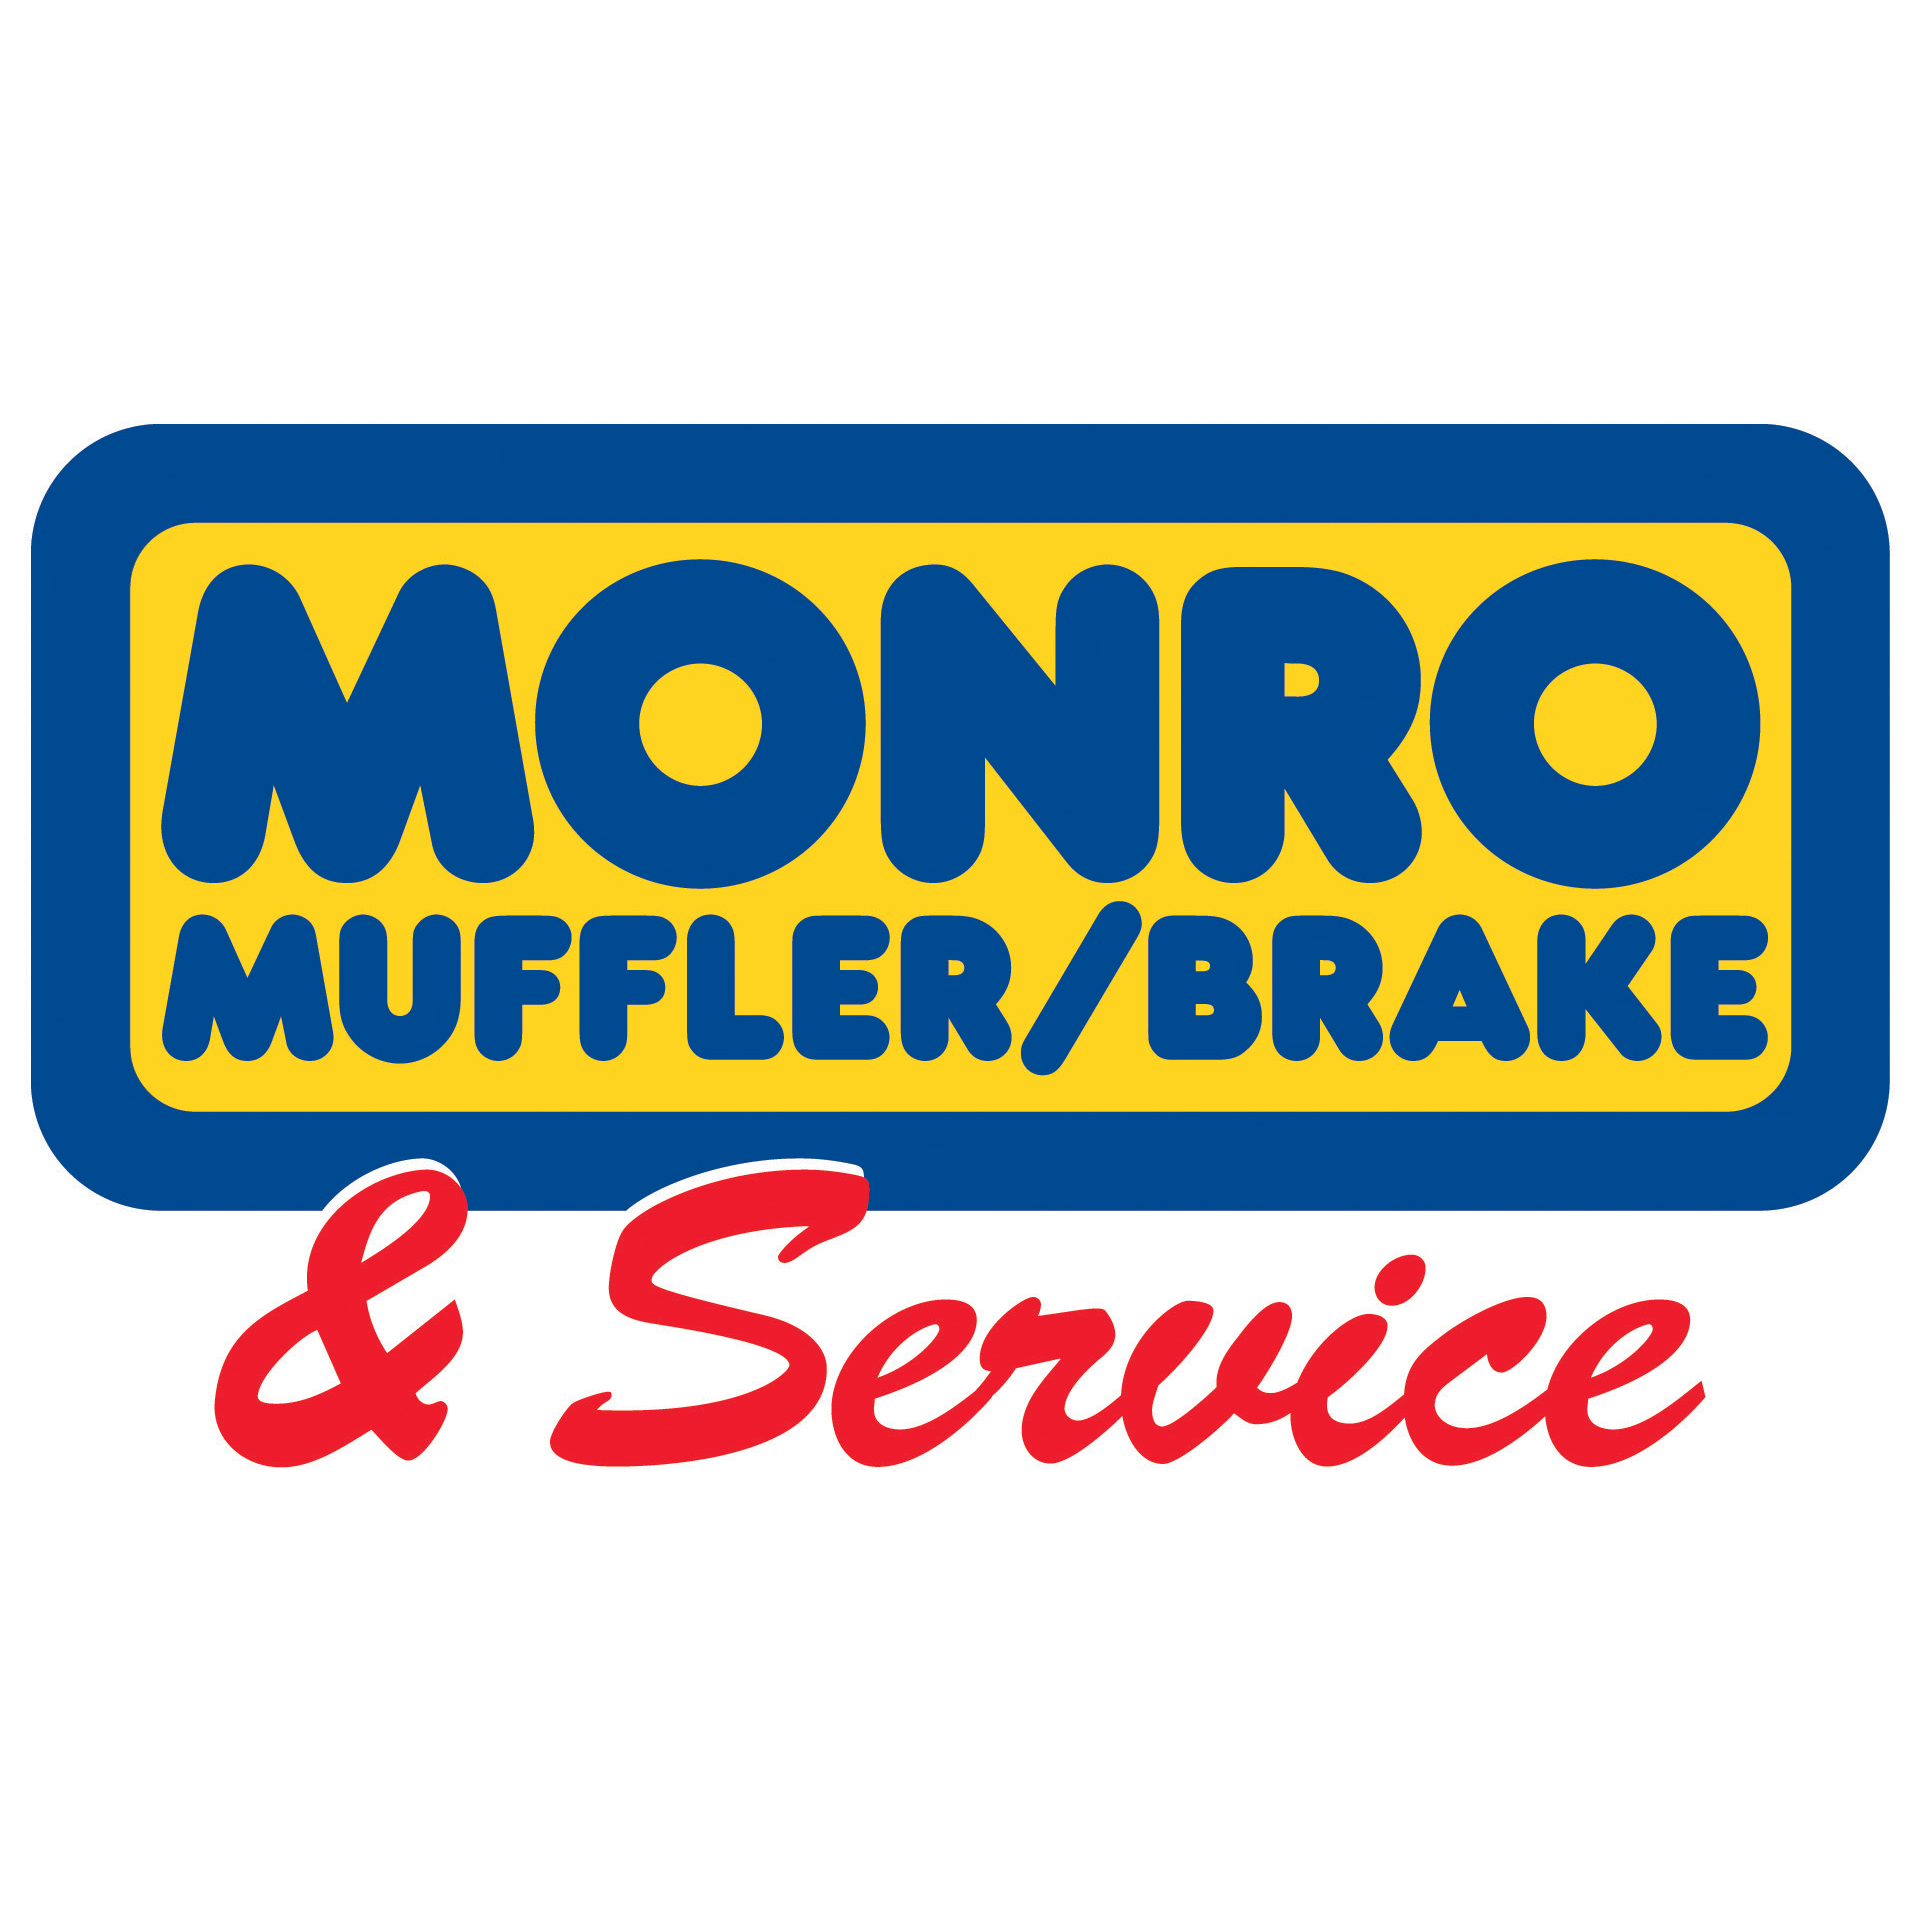 Monro Muffler Brake & Service - North Versailles, PA - General Auto Repair & Service